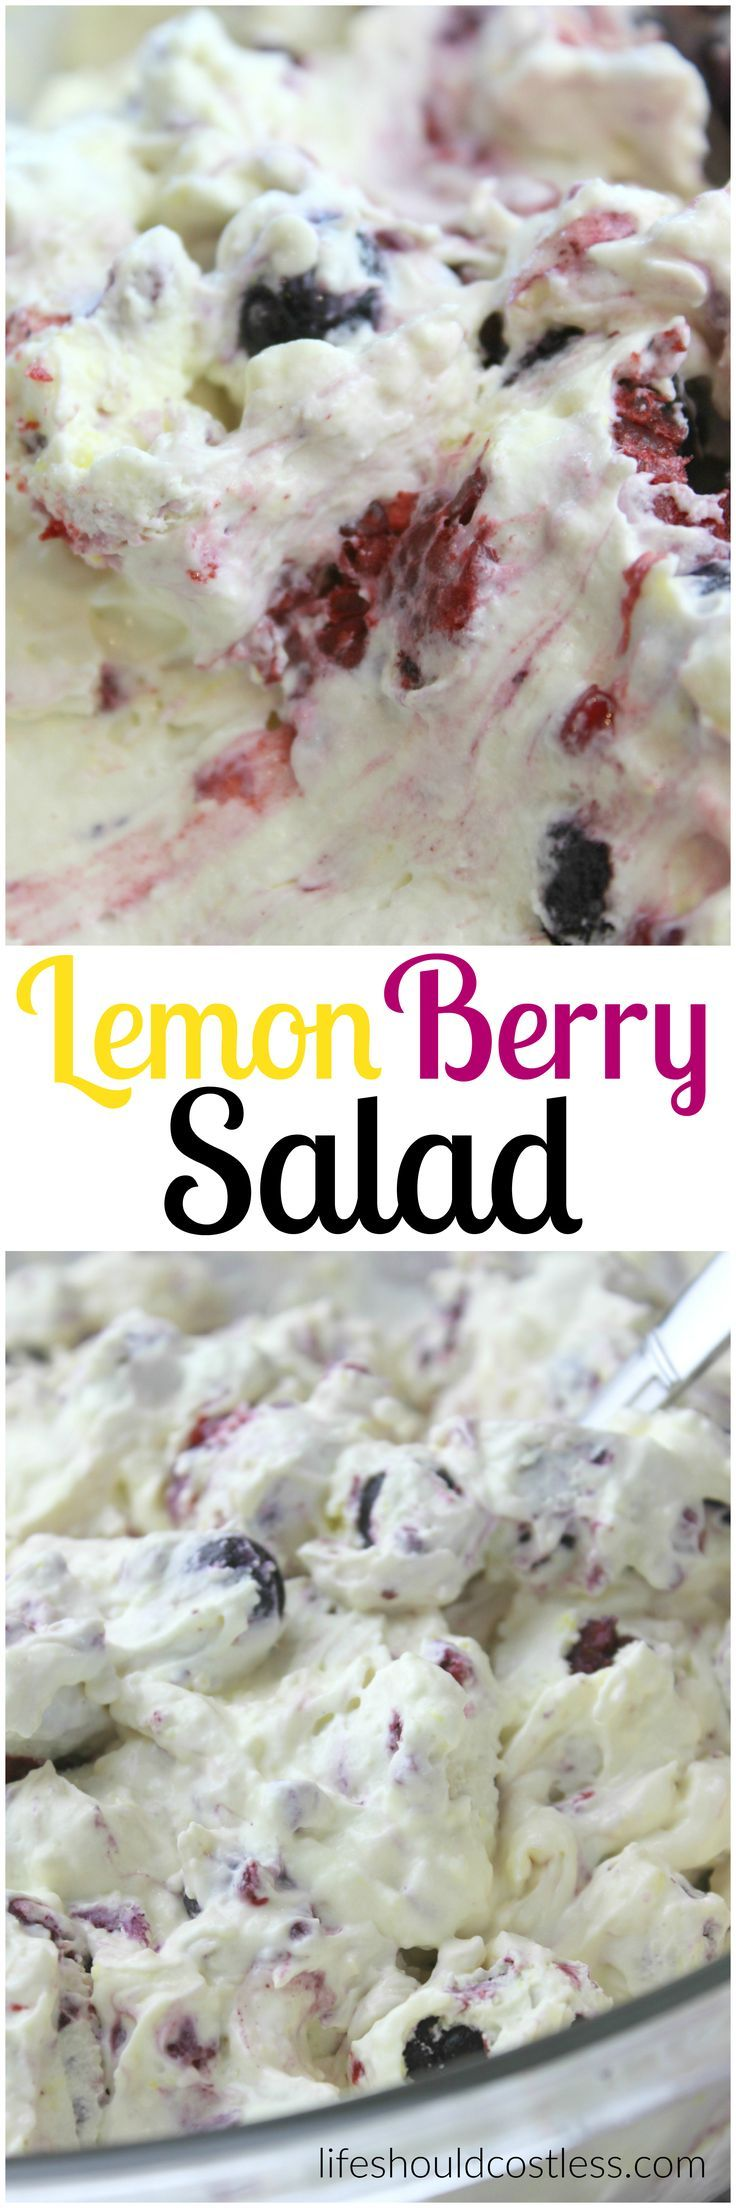 Lemon Berry Salad. The perfect summer treat for any occasion. Plan on having everyone ask you for the recipe, it's that good! A yummy and easy, super popular pin for any occasion. See full greek yogurt lover recipe along with many other tasty treats at http://lifeshouldcostless.com.